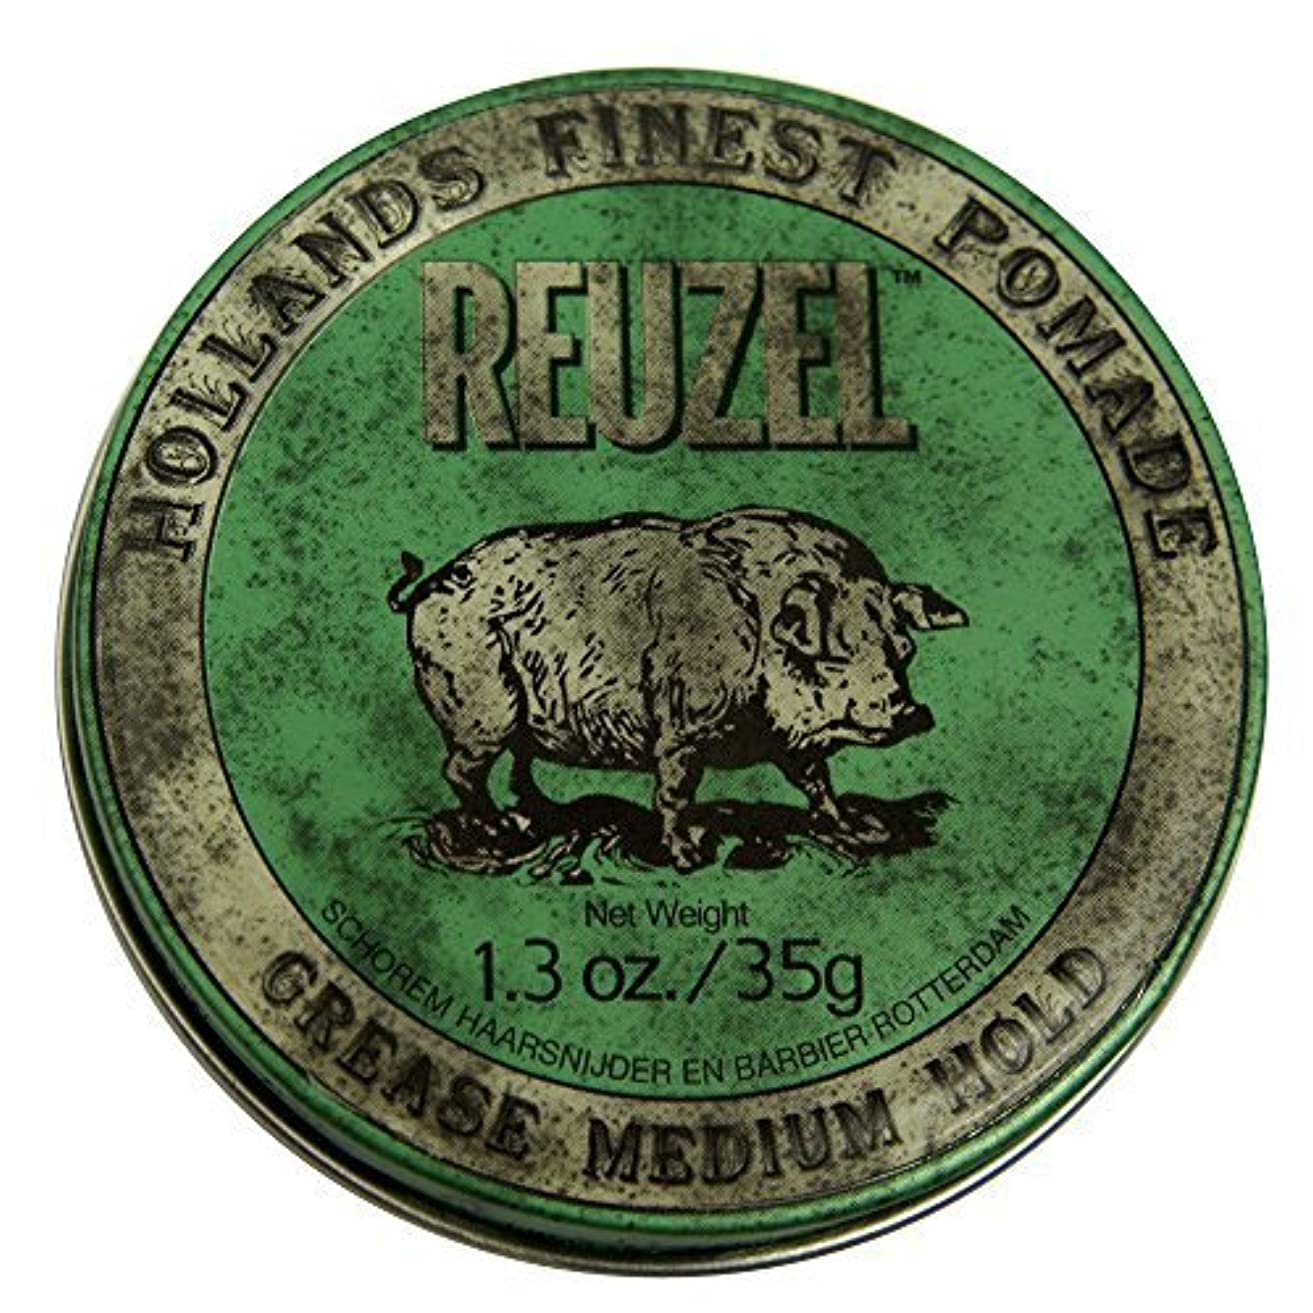 本苦悩アクションby Reuzel Reuzel Green Grease Medium Hold Hair Styling Pomade Piglet 1.3oz (35g) Wax/Gel [並行輸入品]